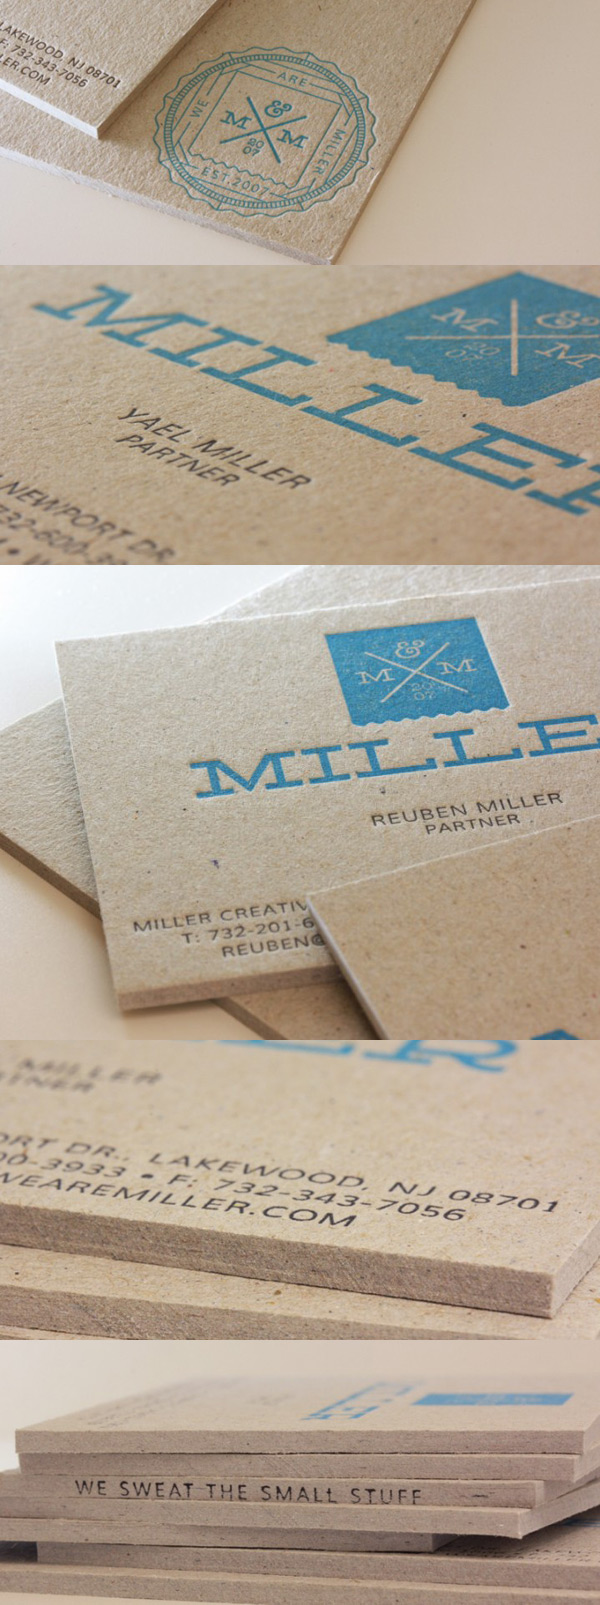 Miller Branding Agency's Letterpress Business Cards